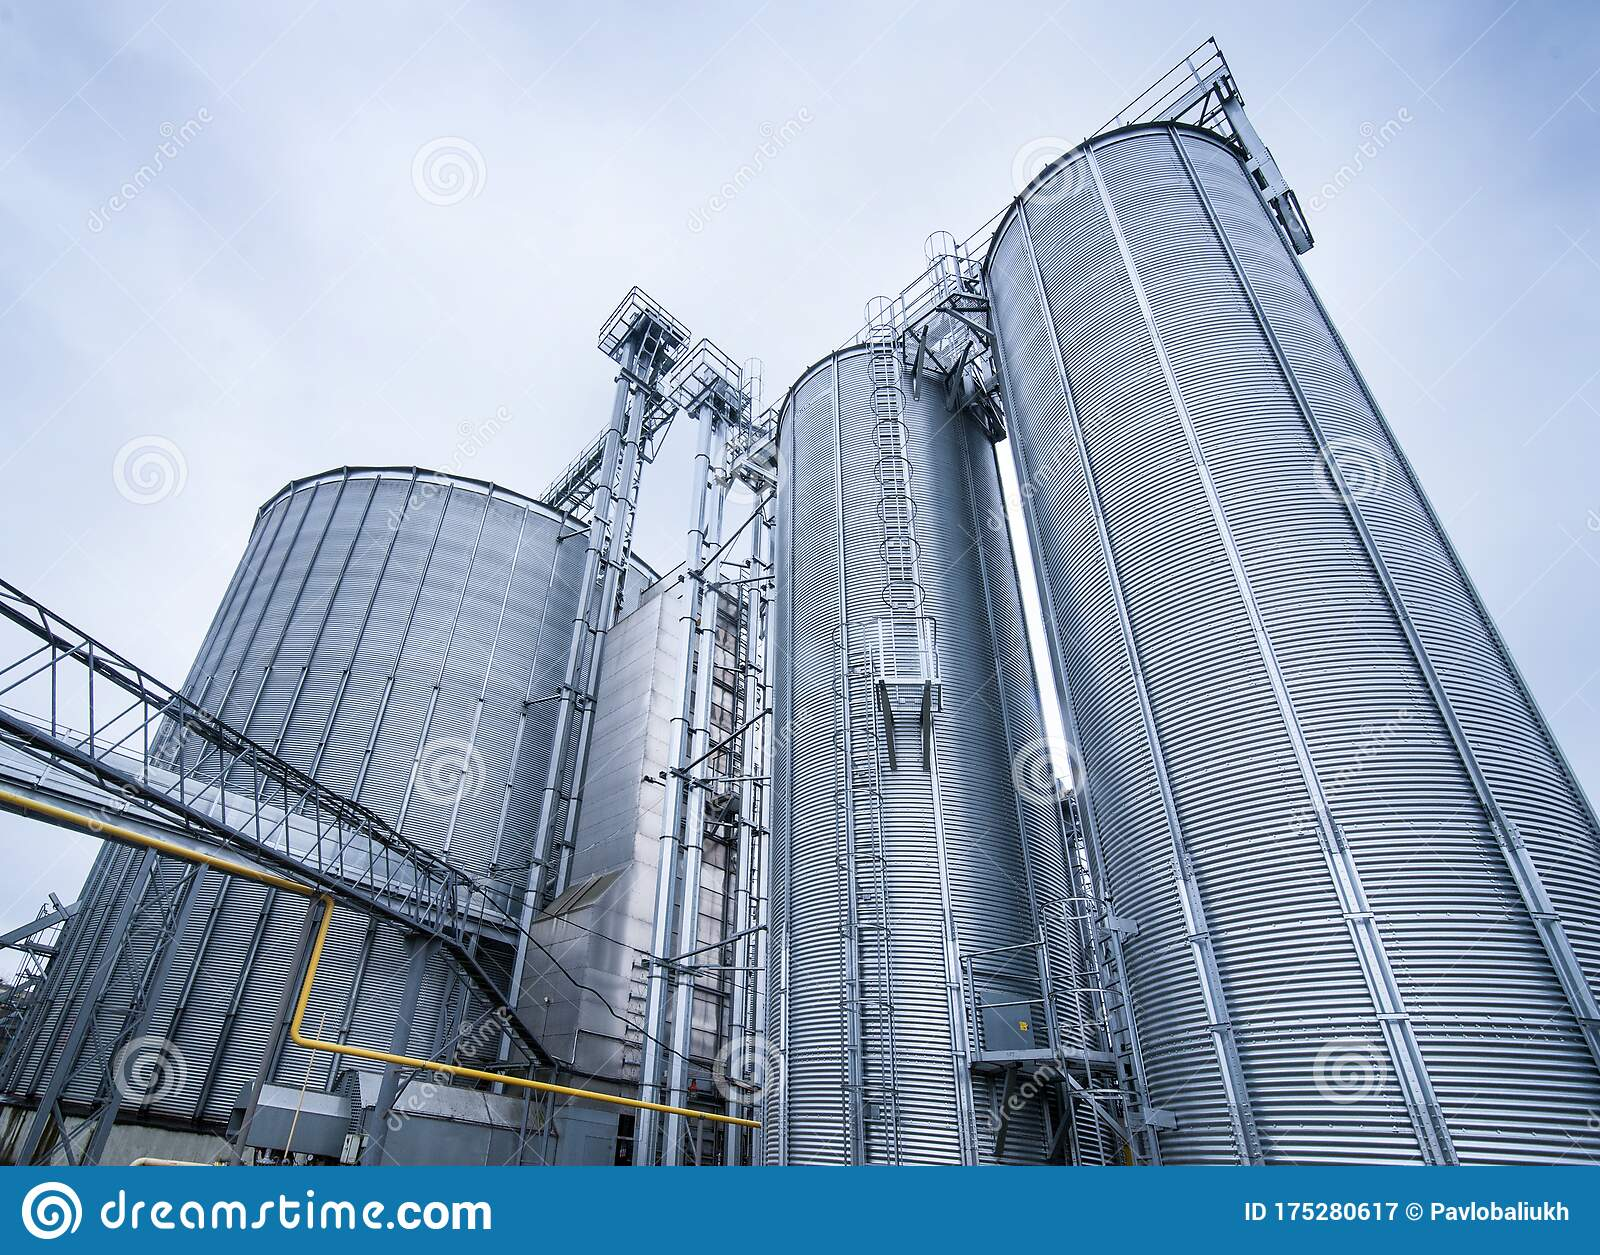 Silos For Storage Of Grain, Silo Roof Close-up. Warehouse Of Wheat Cereals. View From Bottom Stock Image